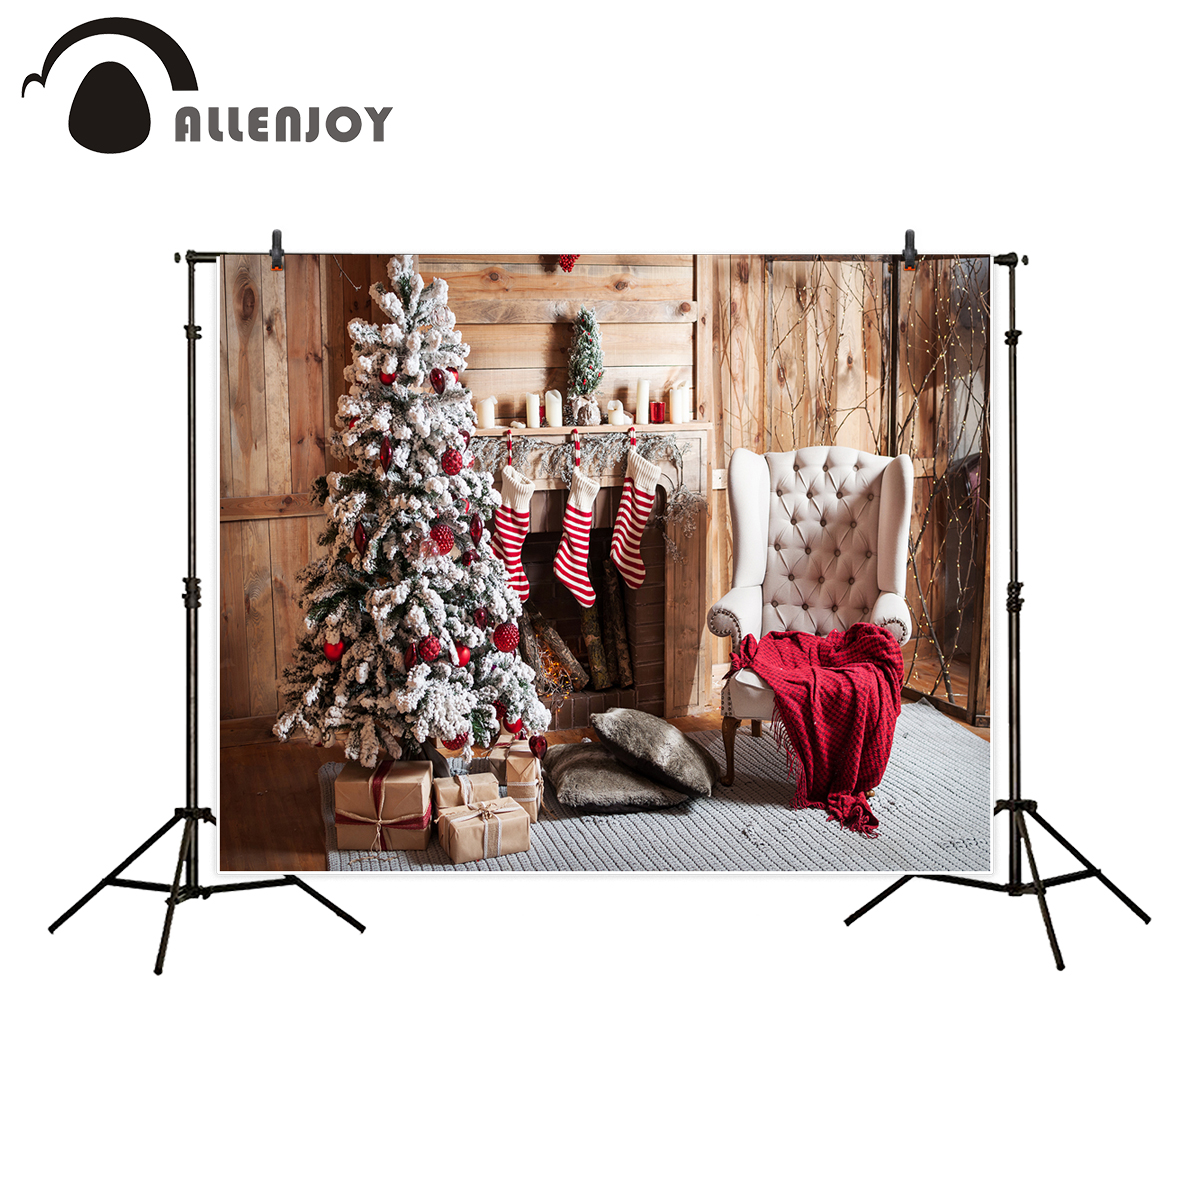 Allenjoy photography background Christmas tree wood room fireplace sofa backdrop photocall photographic photo prop photobooth